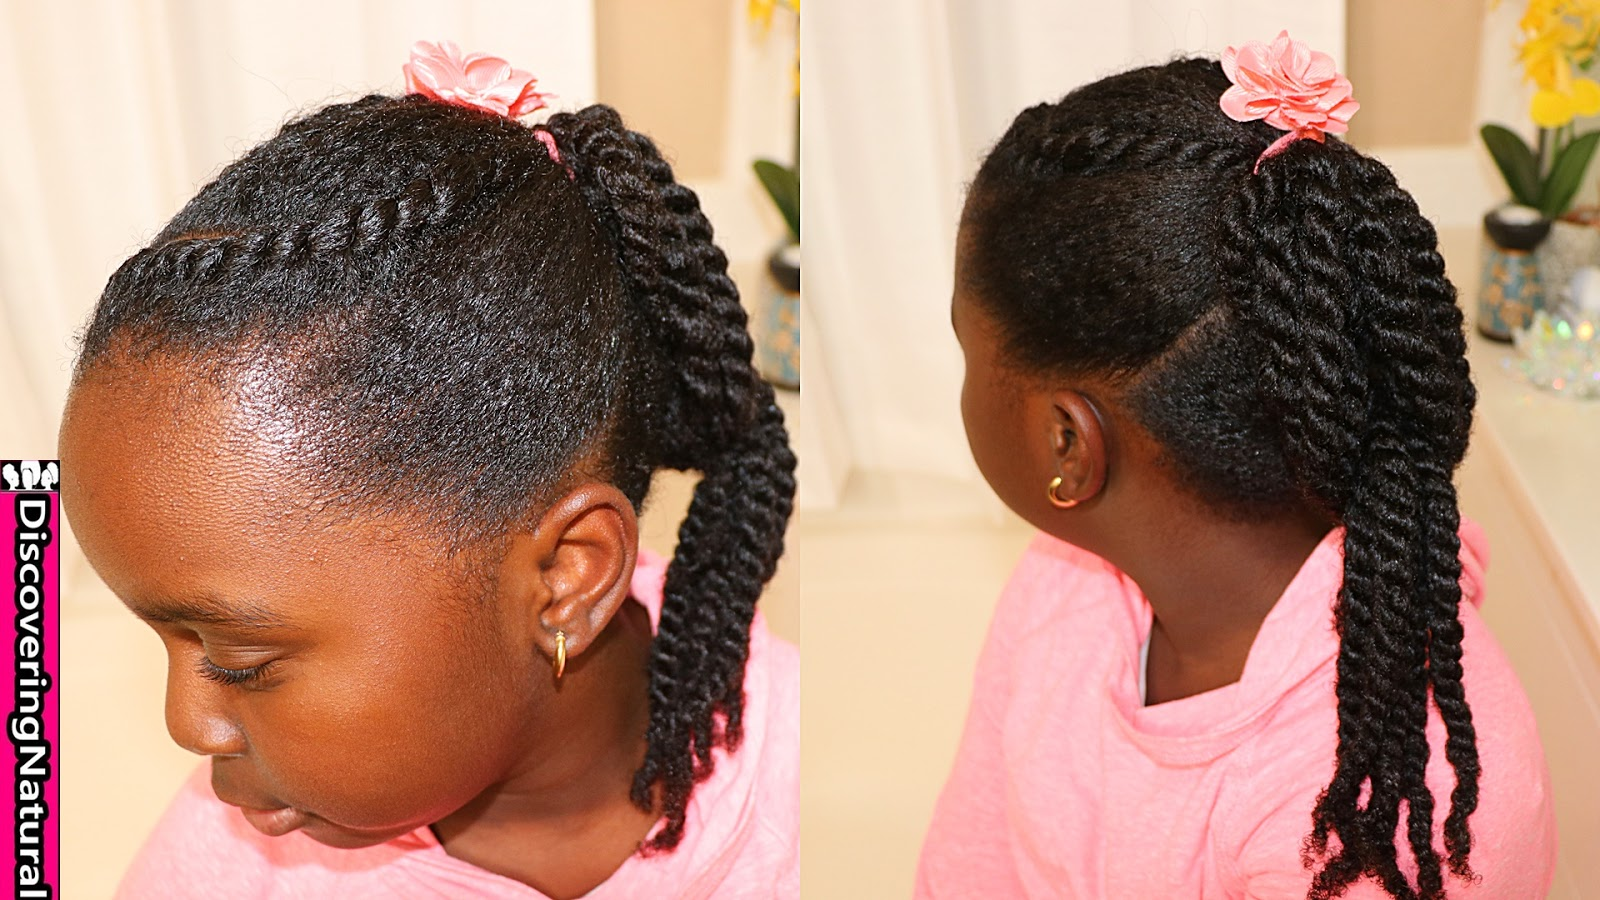 discoveringnatural: kids hairstyles twists and flat twist